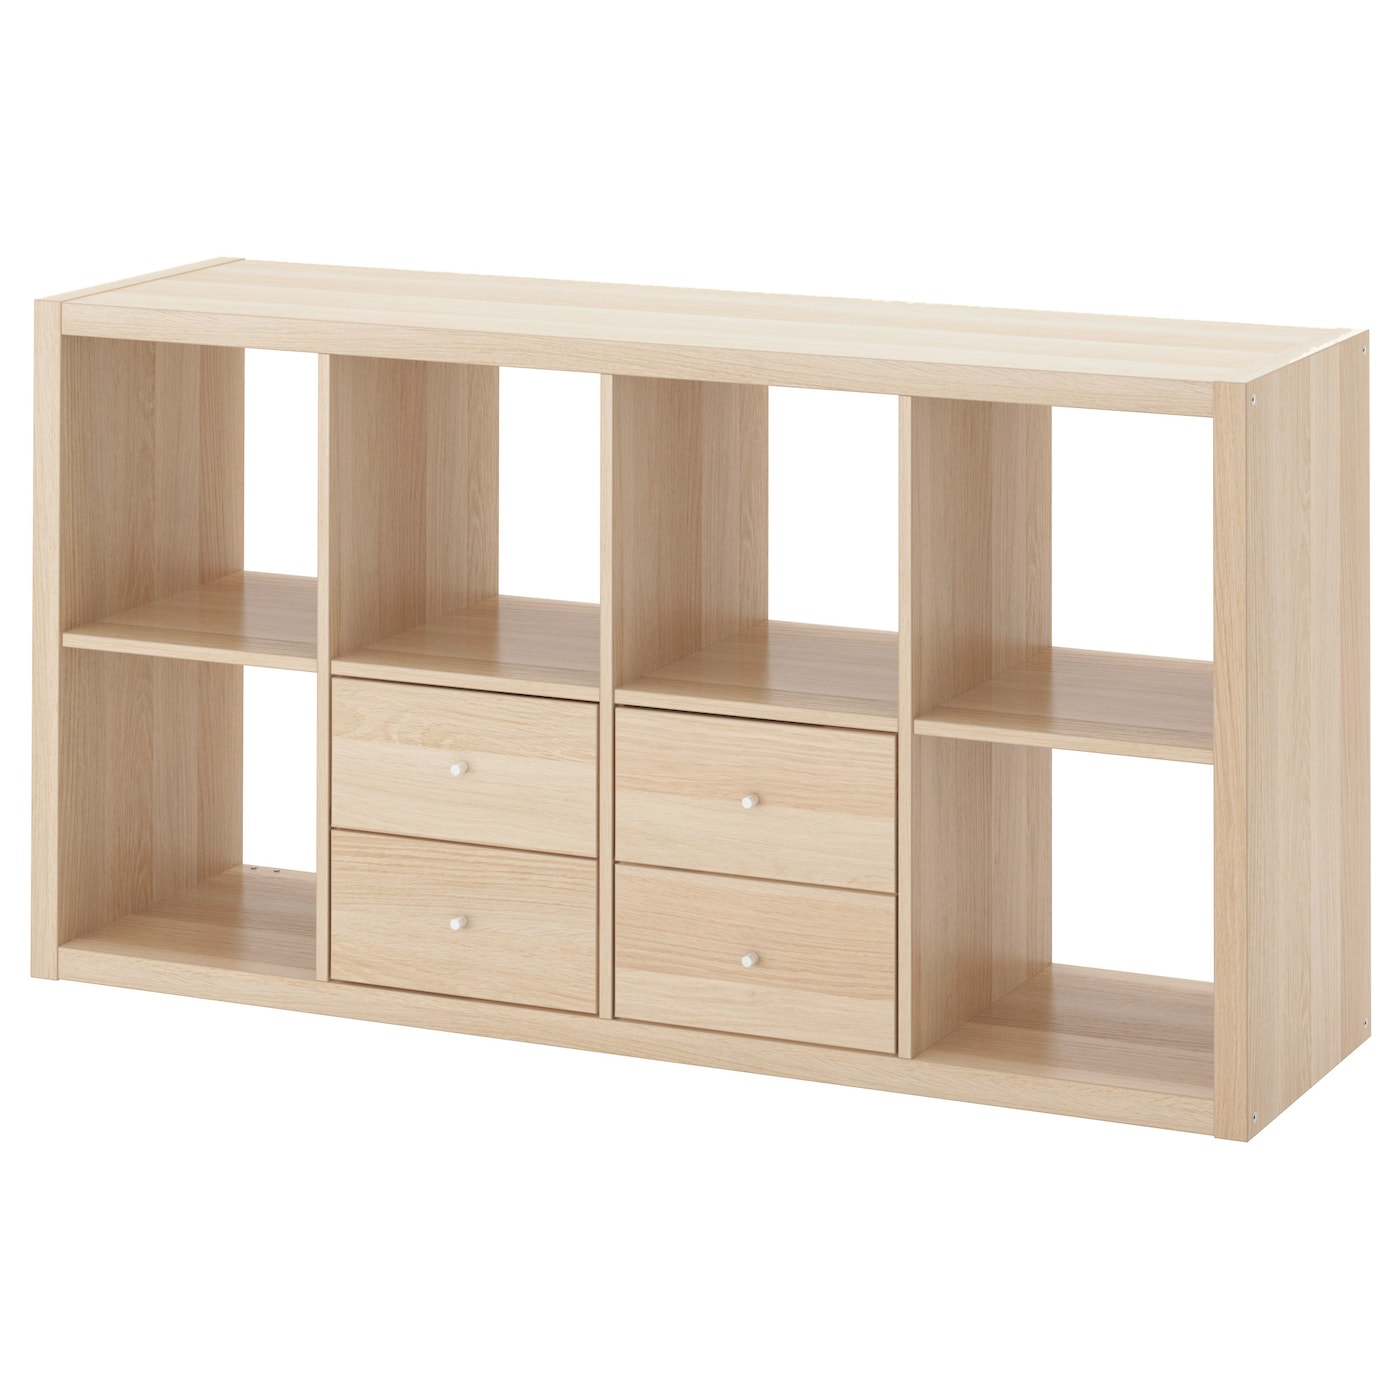 Kallax Shelving Unit With 2 Inserts White Stained Oak